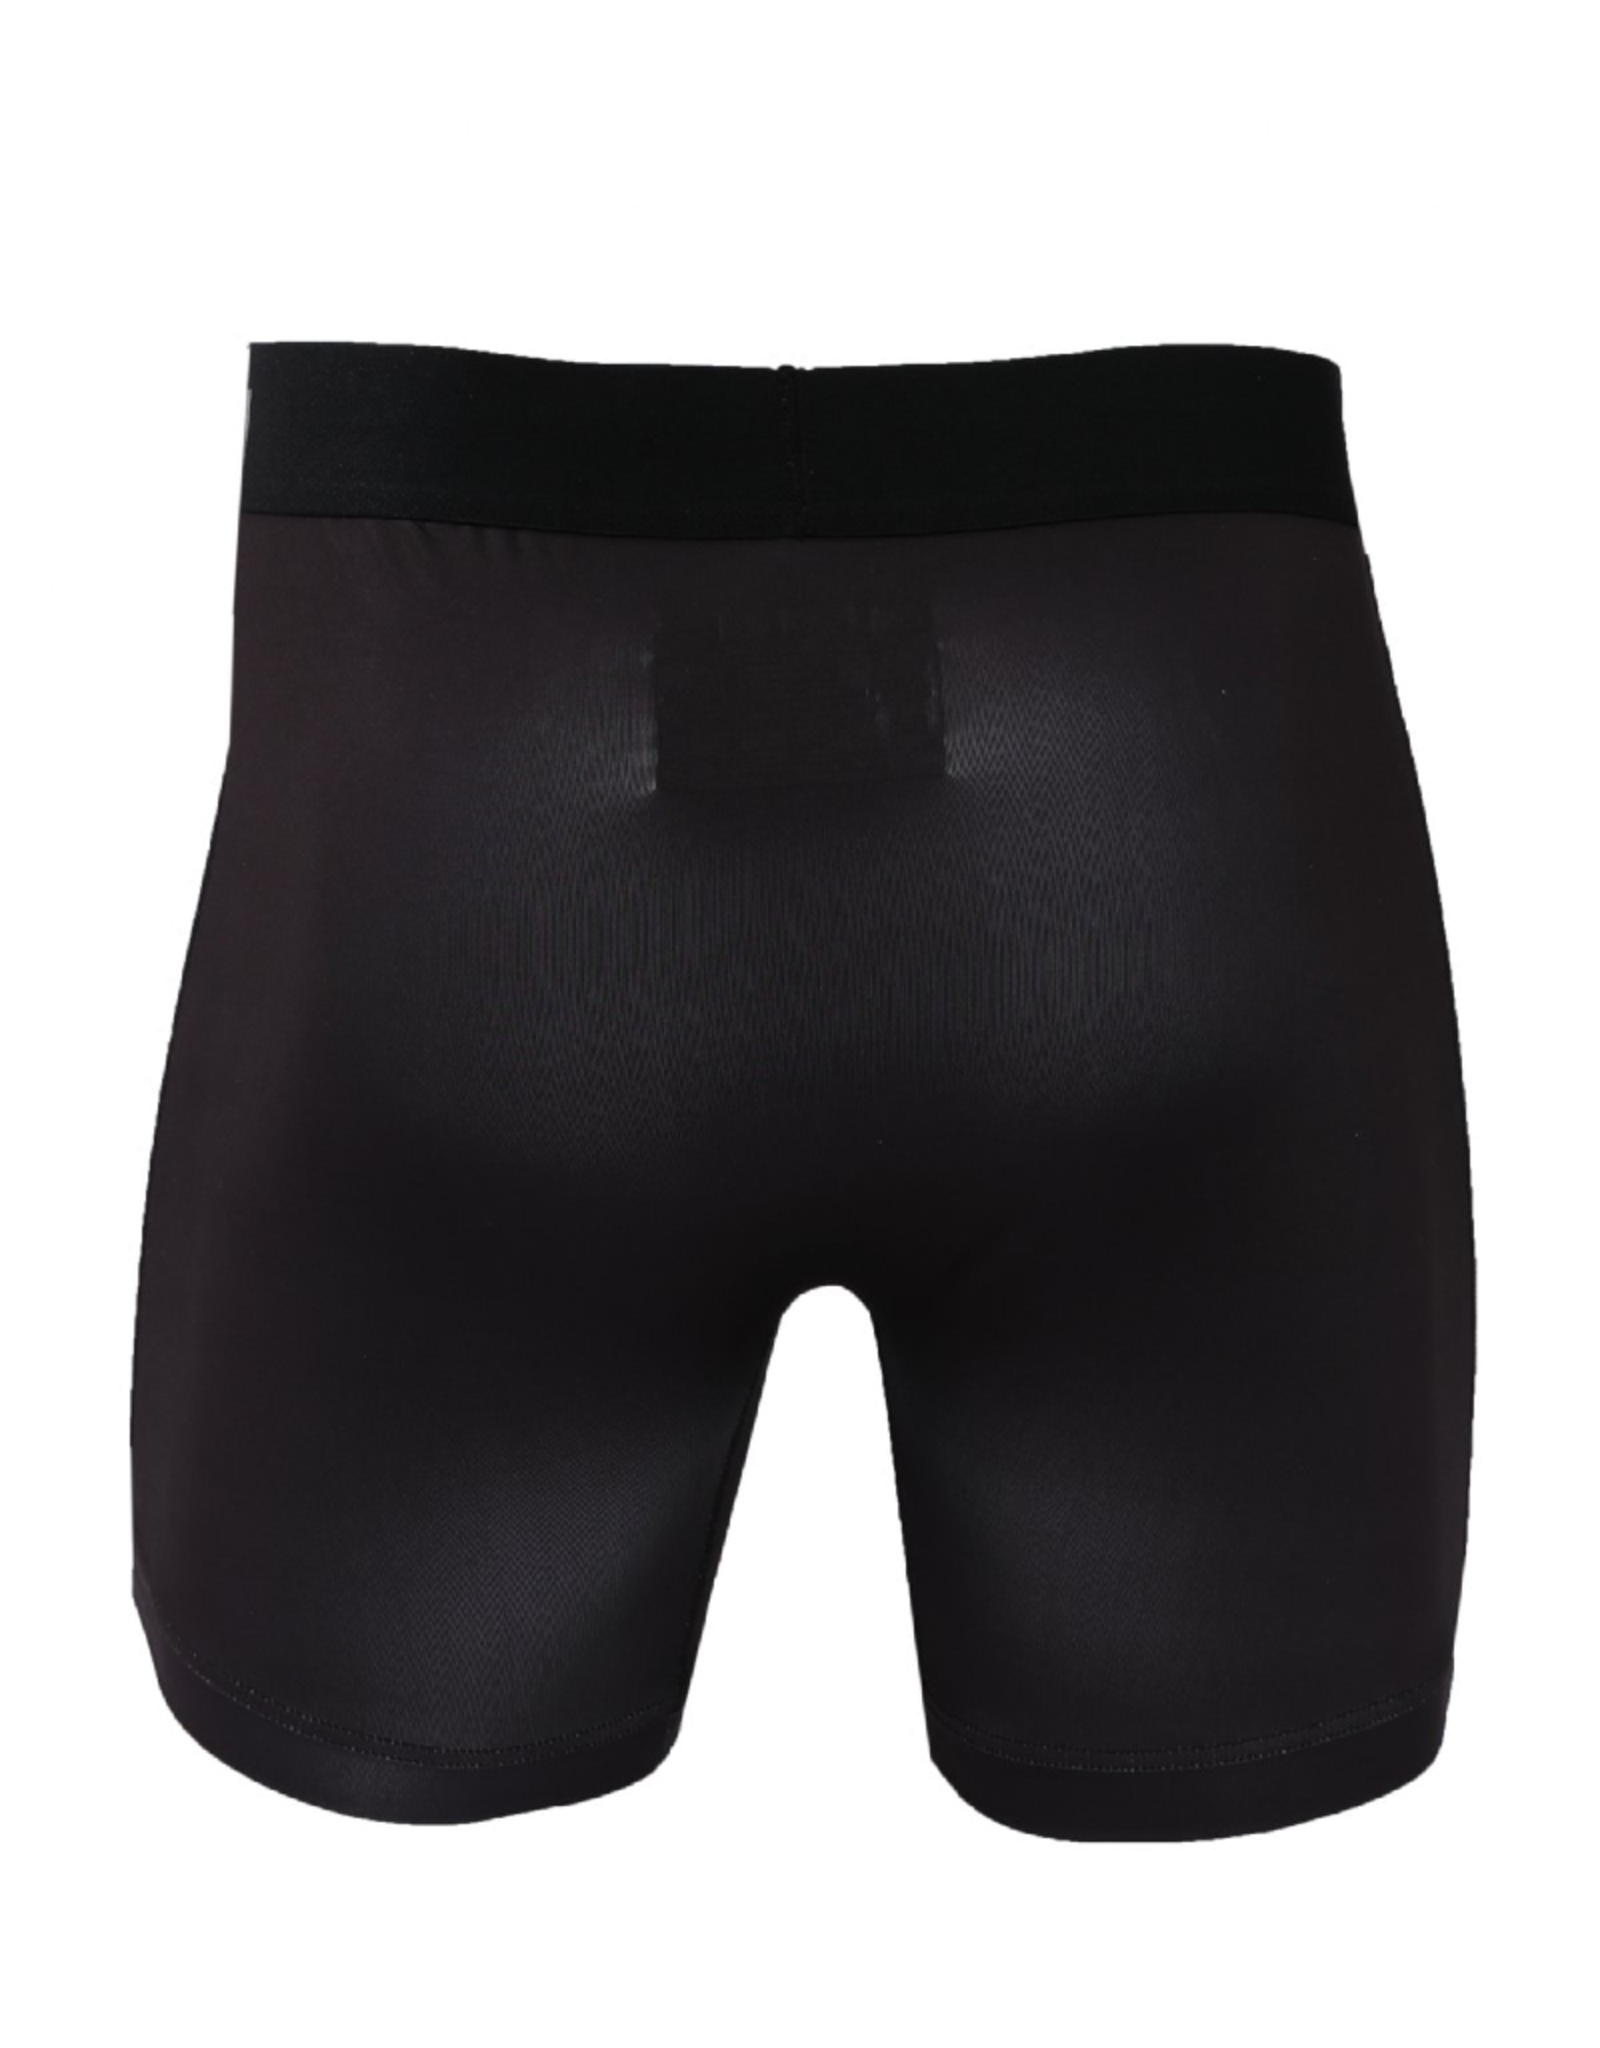 "Cinch Cinch 6"" Boxer Brief"